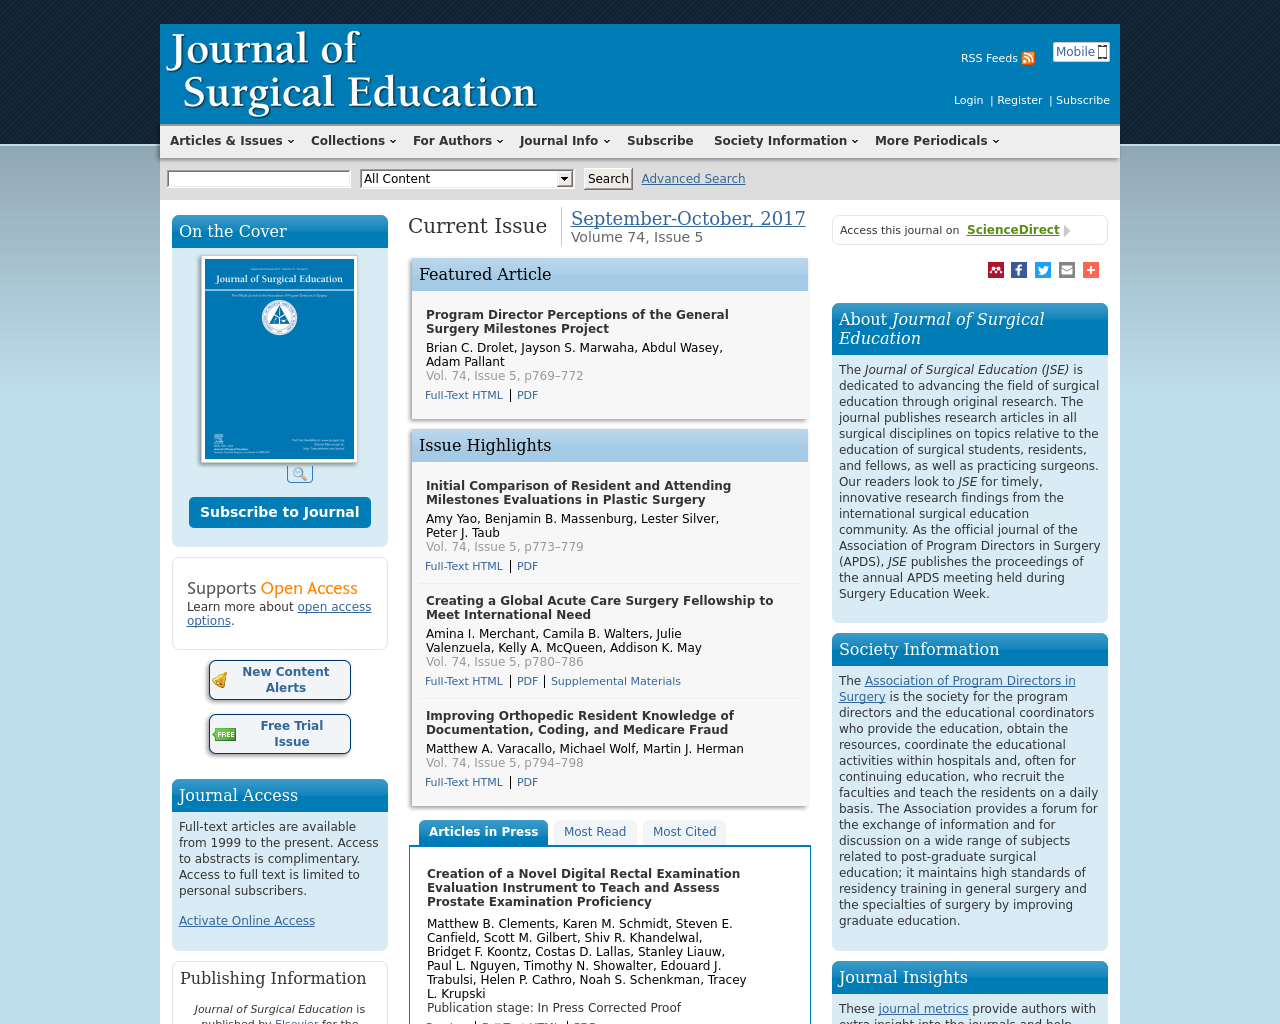 Journal-of-Surgical-Education-Advertising-Reviews-Pricing